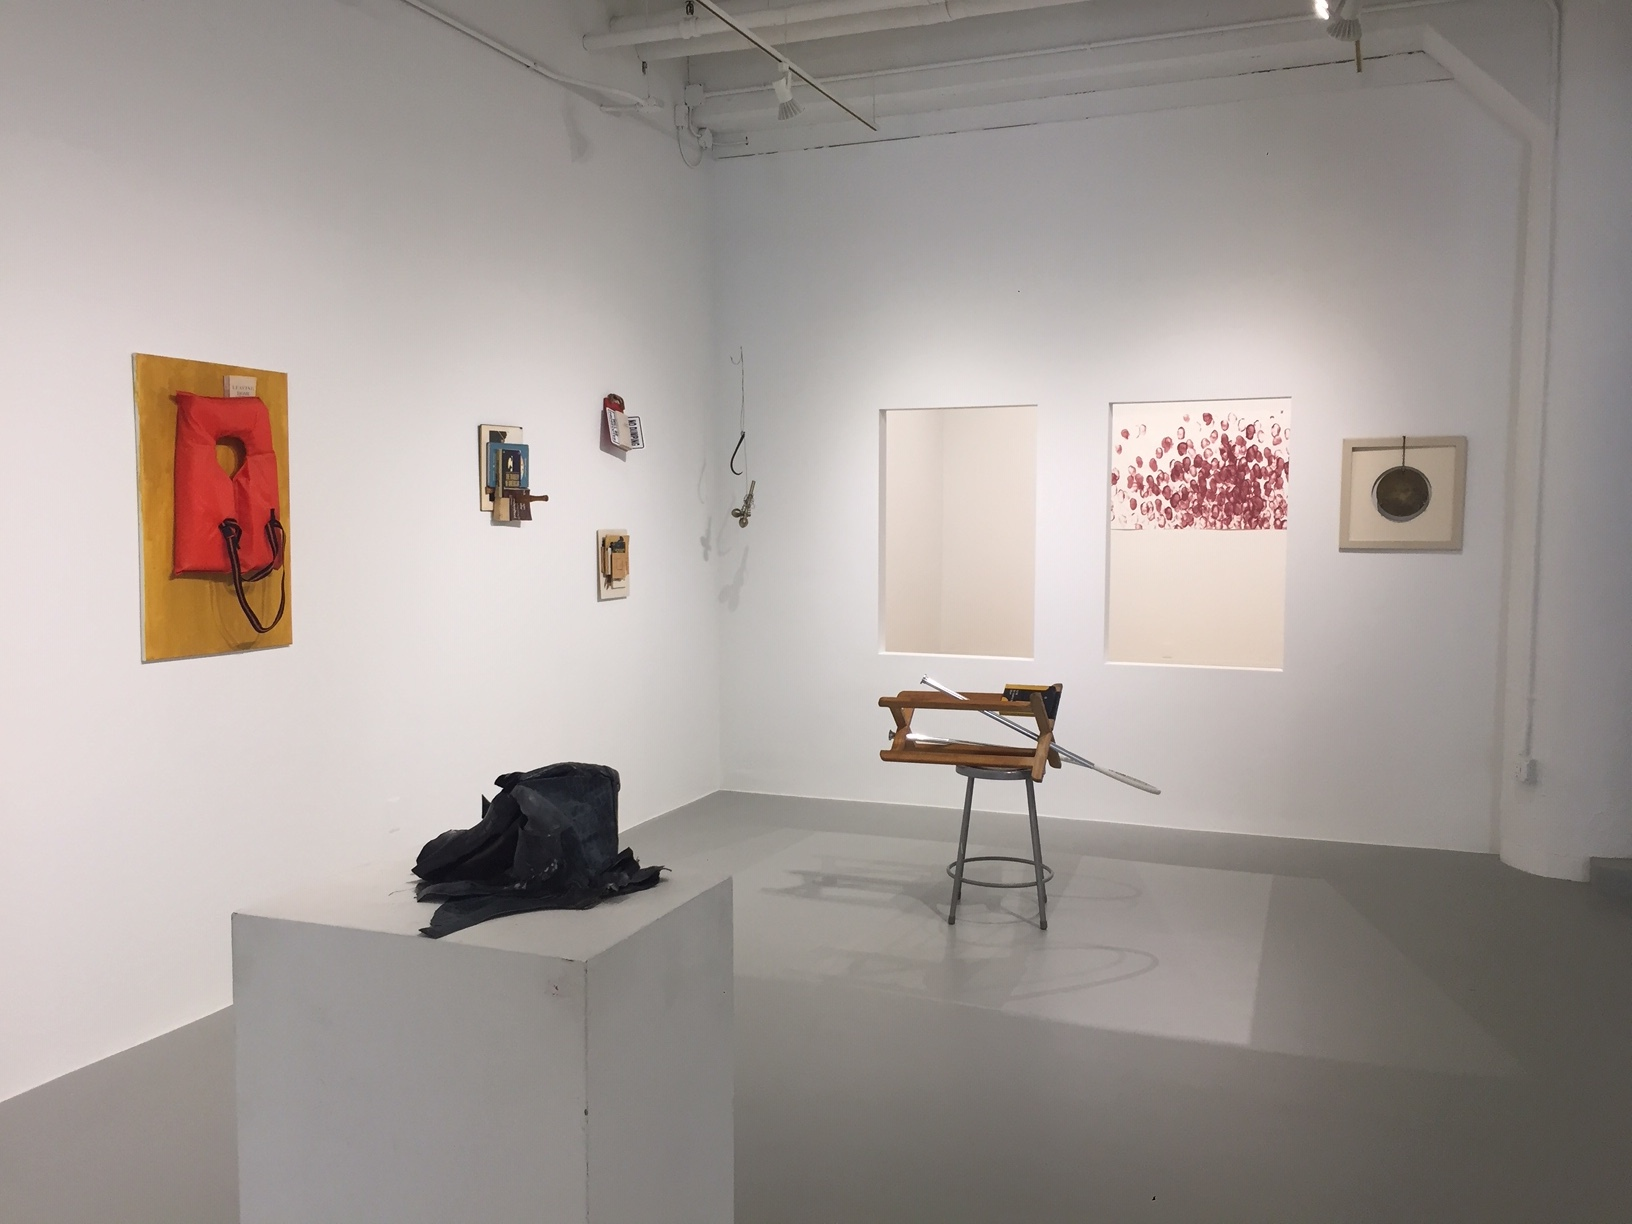 Group Show, Rosenwald Wolf Gallery, July 2019